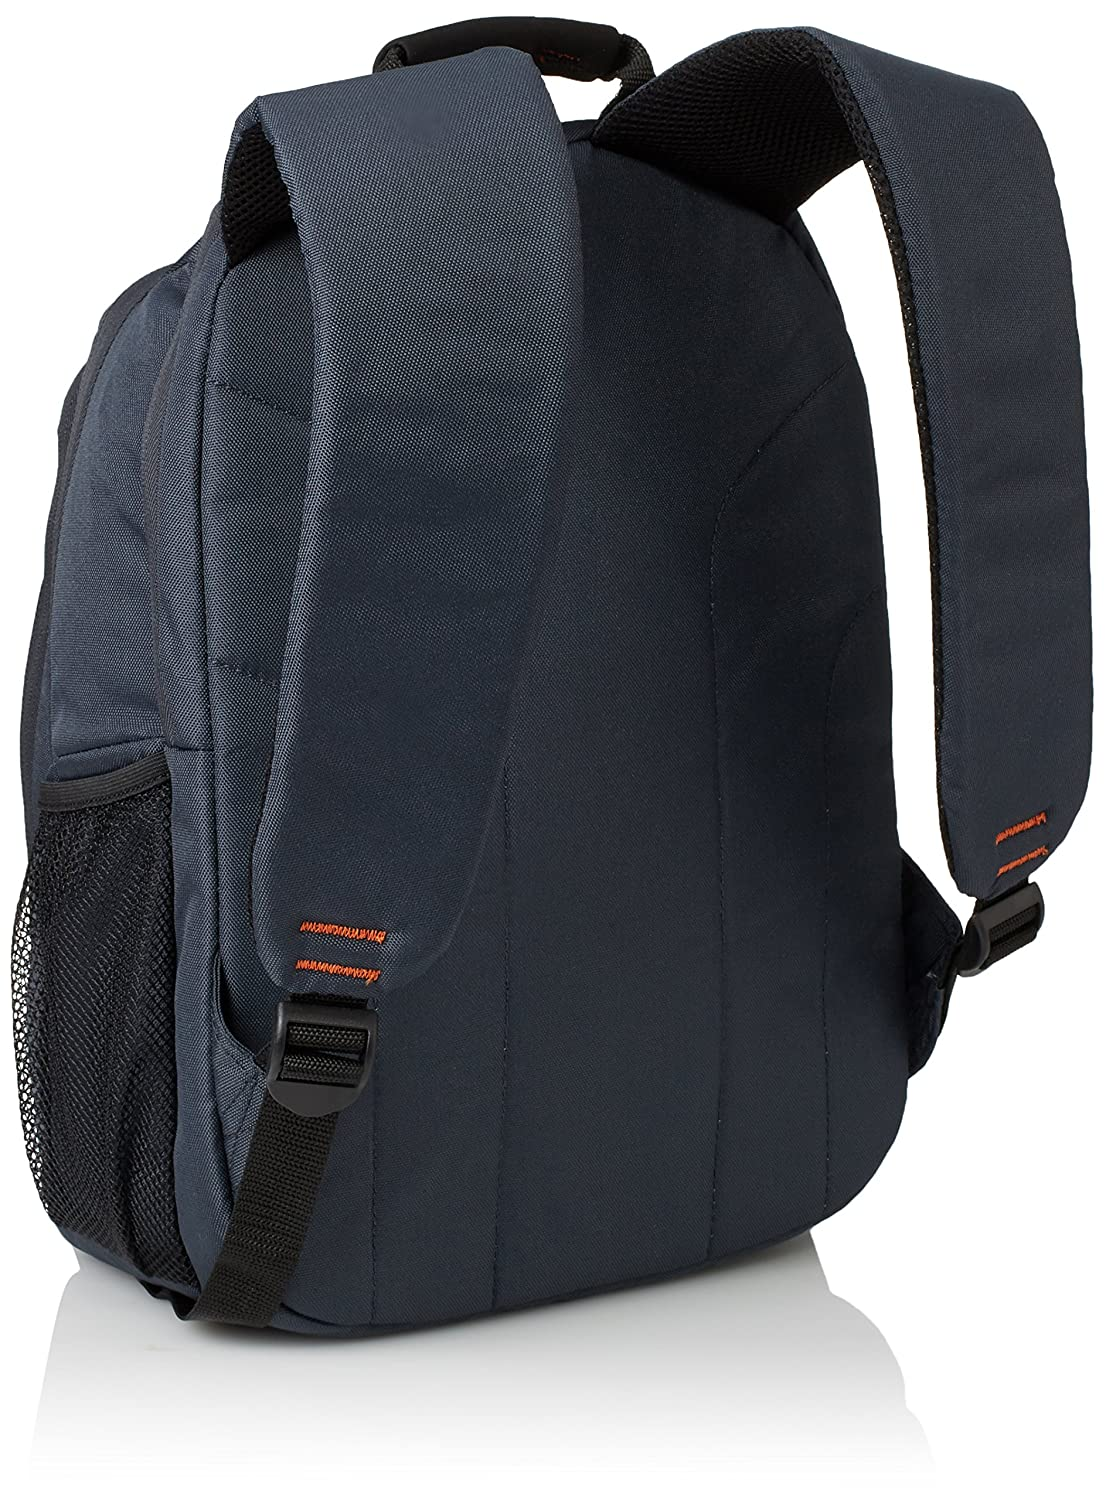 Amazon.com: Samsonite Backpack SAMSONITE 88U08004 13-14.1 GUARDIT comp, doc., tablet,pocket, d.grey: Electronics